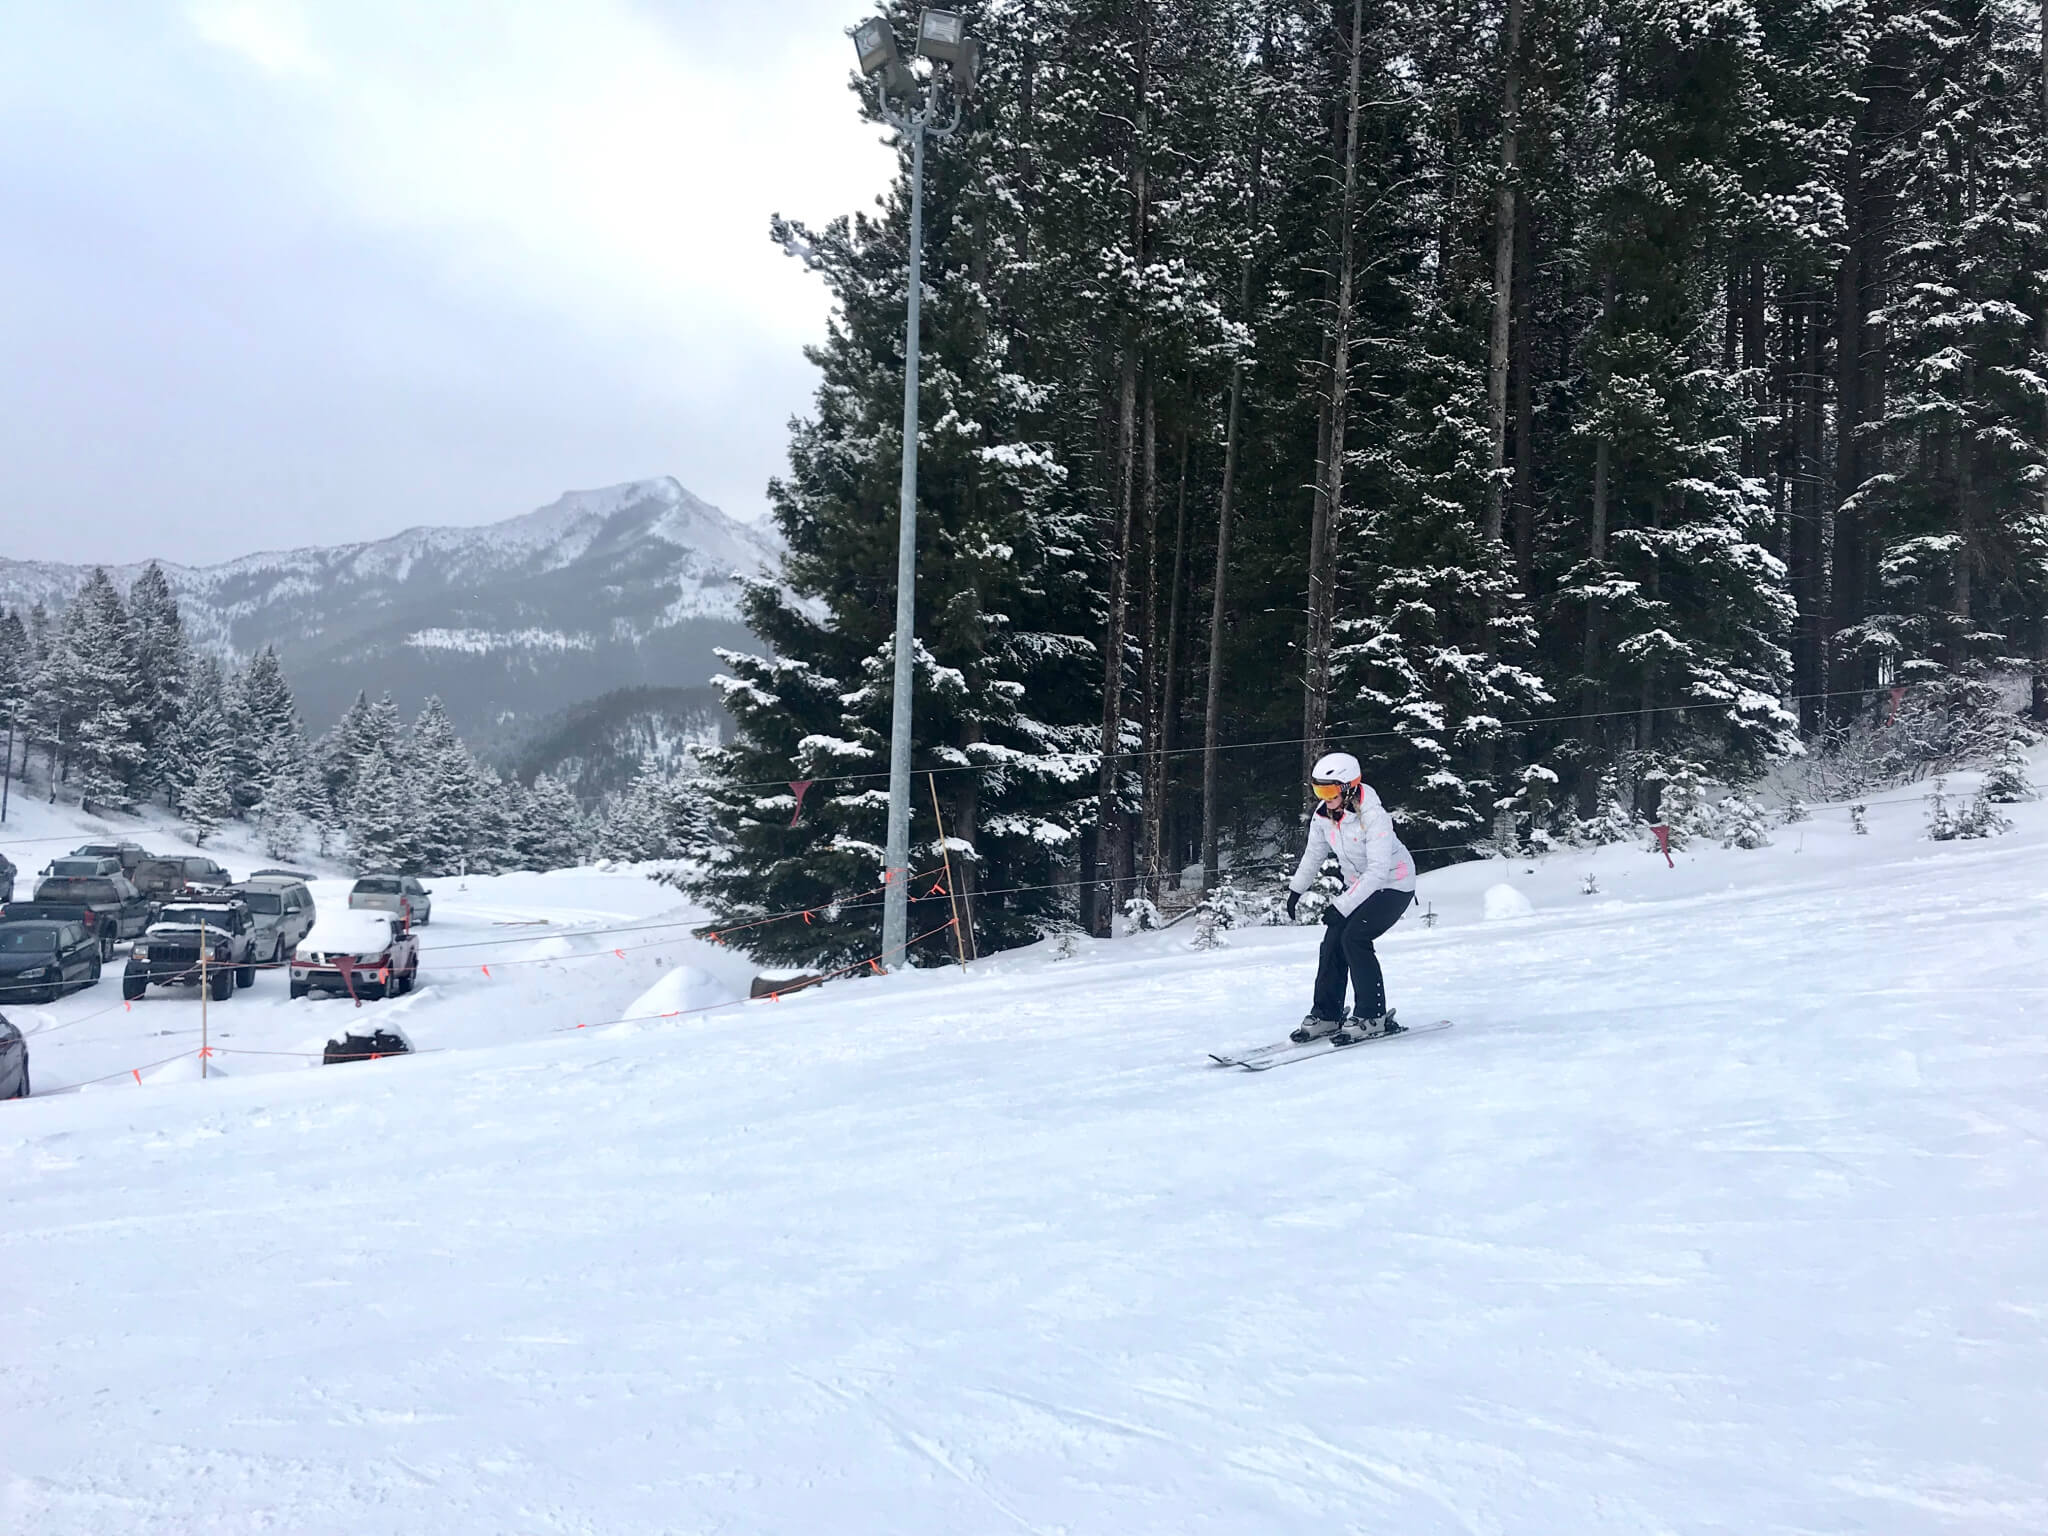 Learning to ski at Pass PowderKeg- Lesson 1/4 Recap